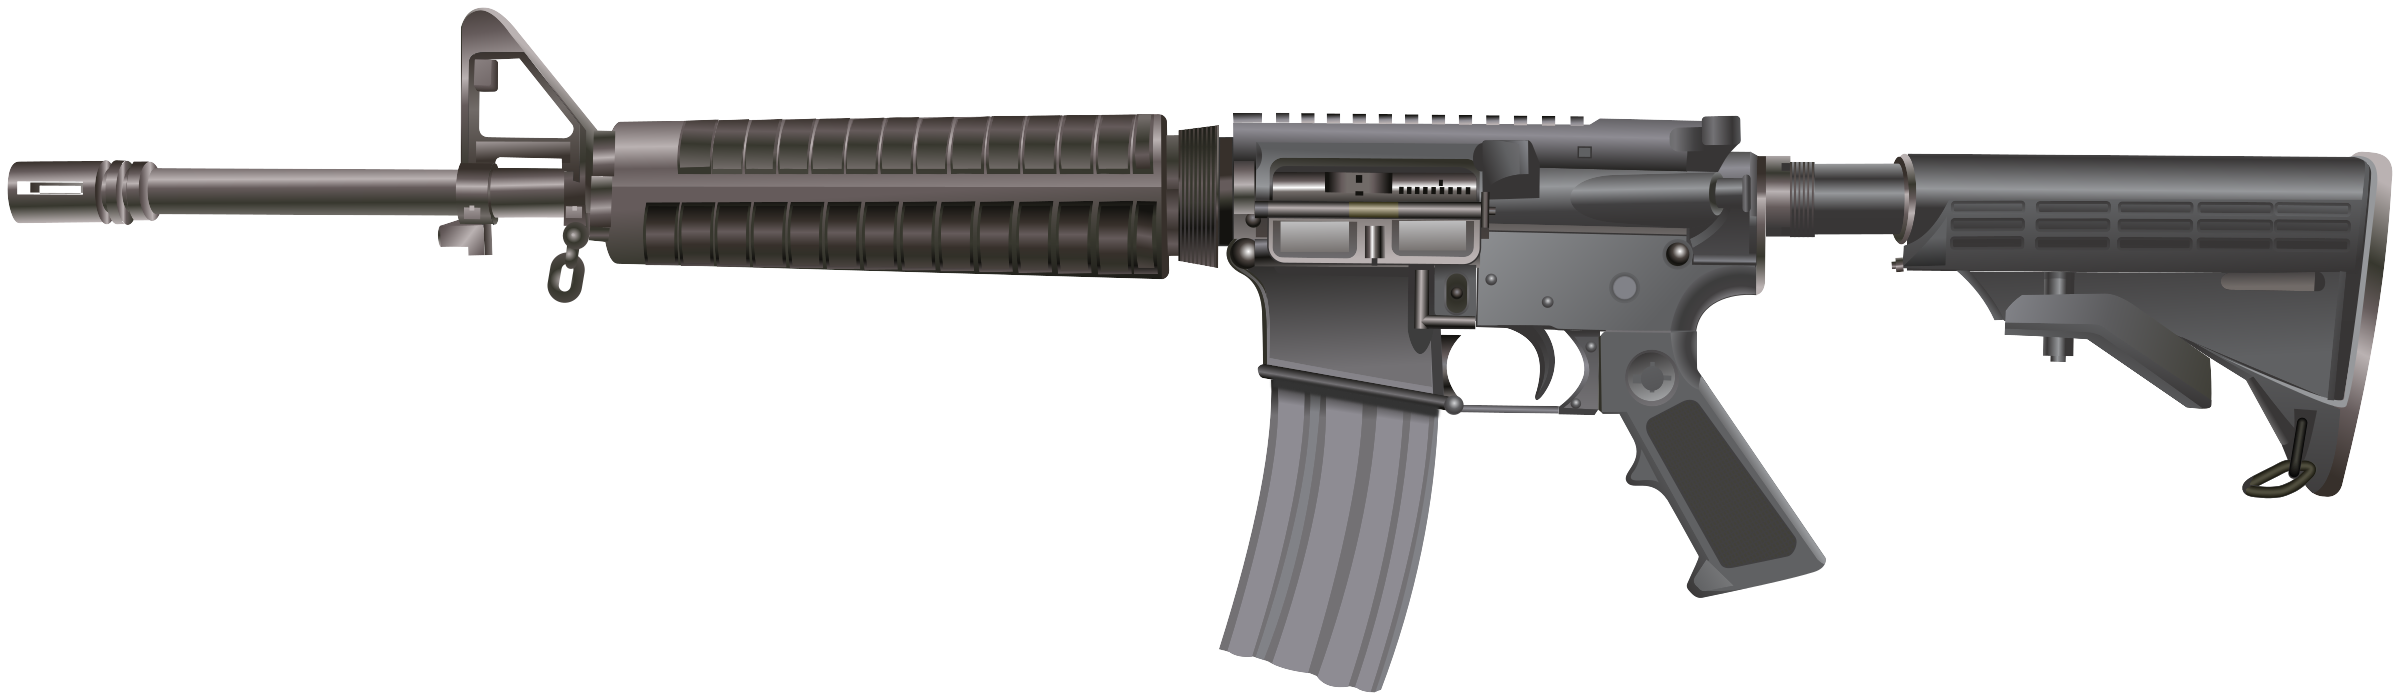 M16 / AR-15 rifle by Juhele